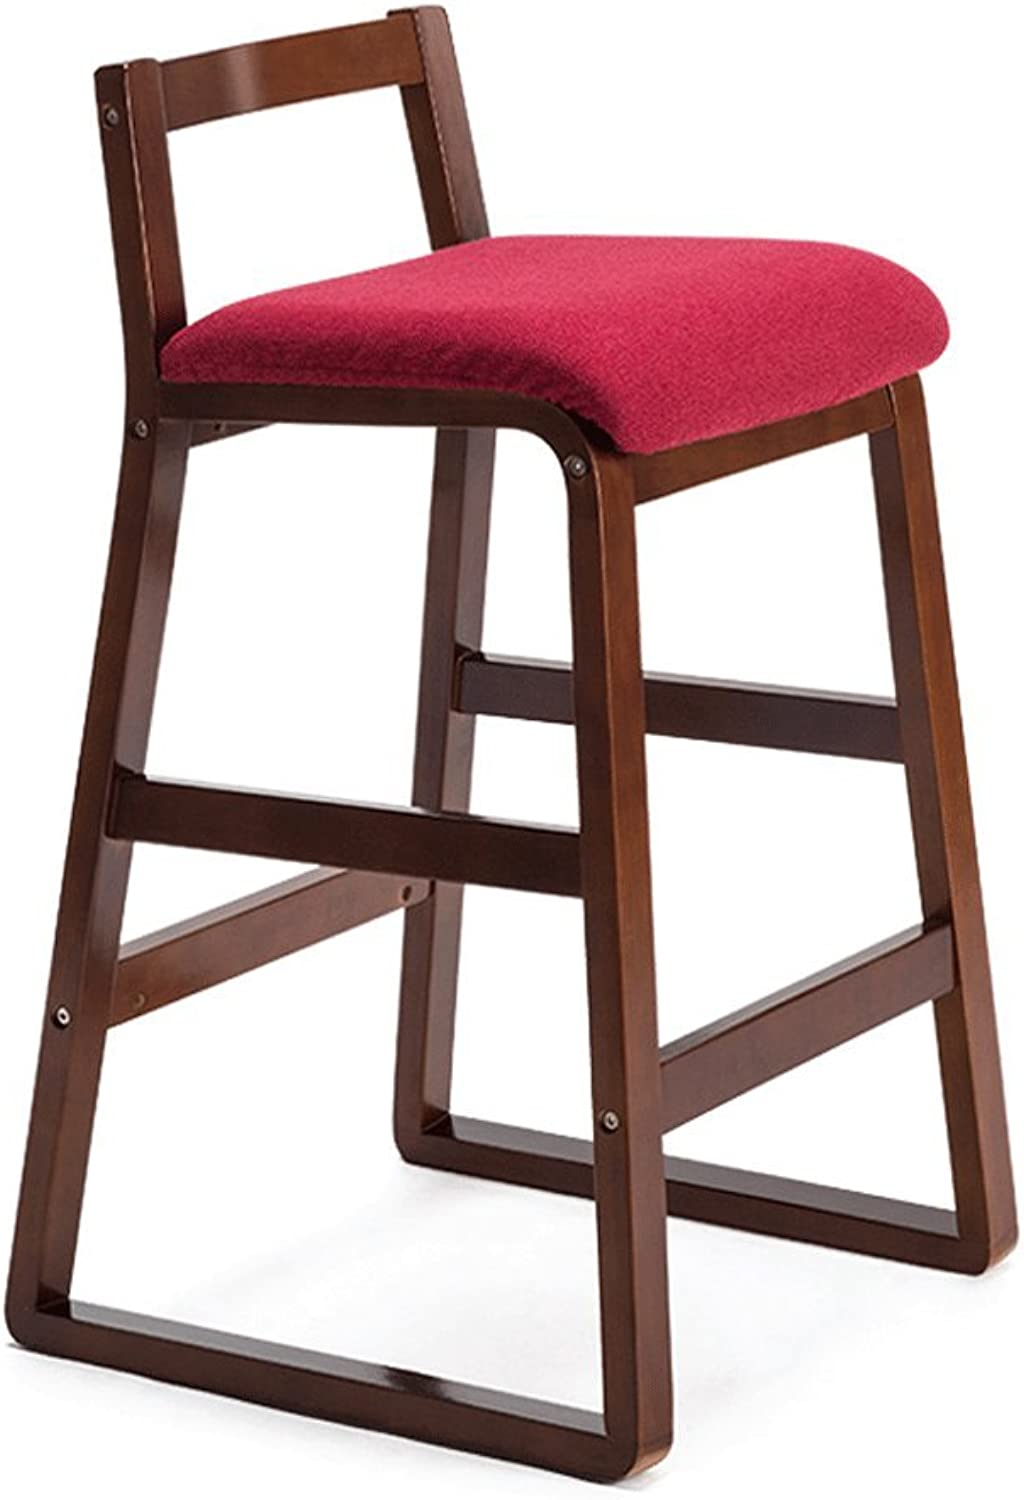 TXXM Barstools Solid Wood Stool Creative Bar Chair Removable Fabric Chair Modern Cafe Stool (color   D, Size   68.5cm)